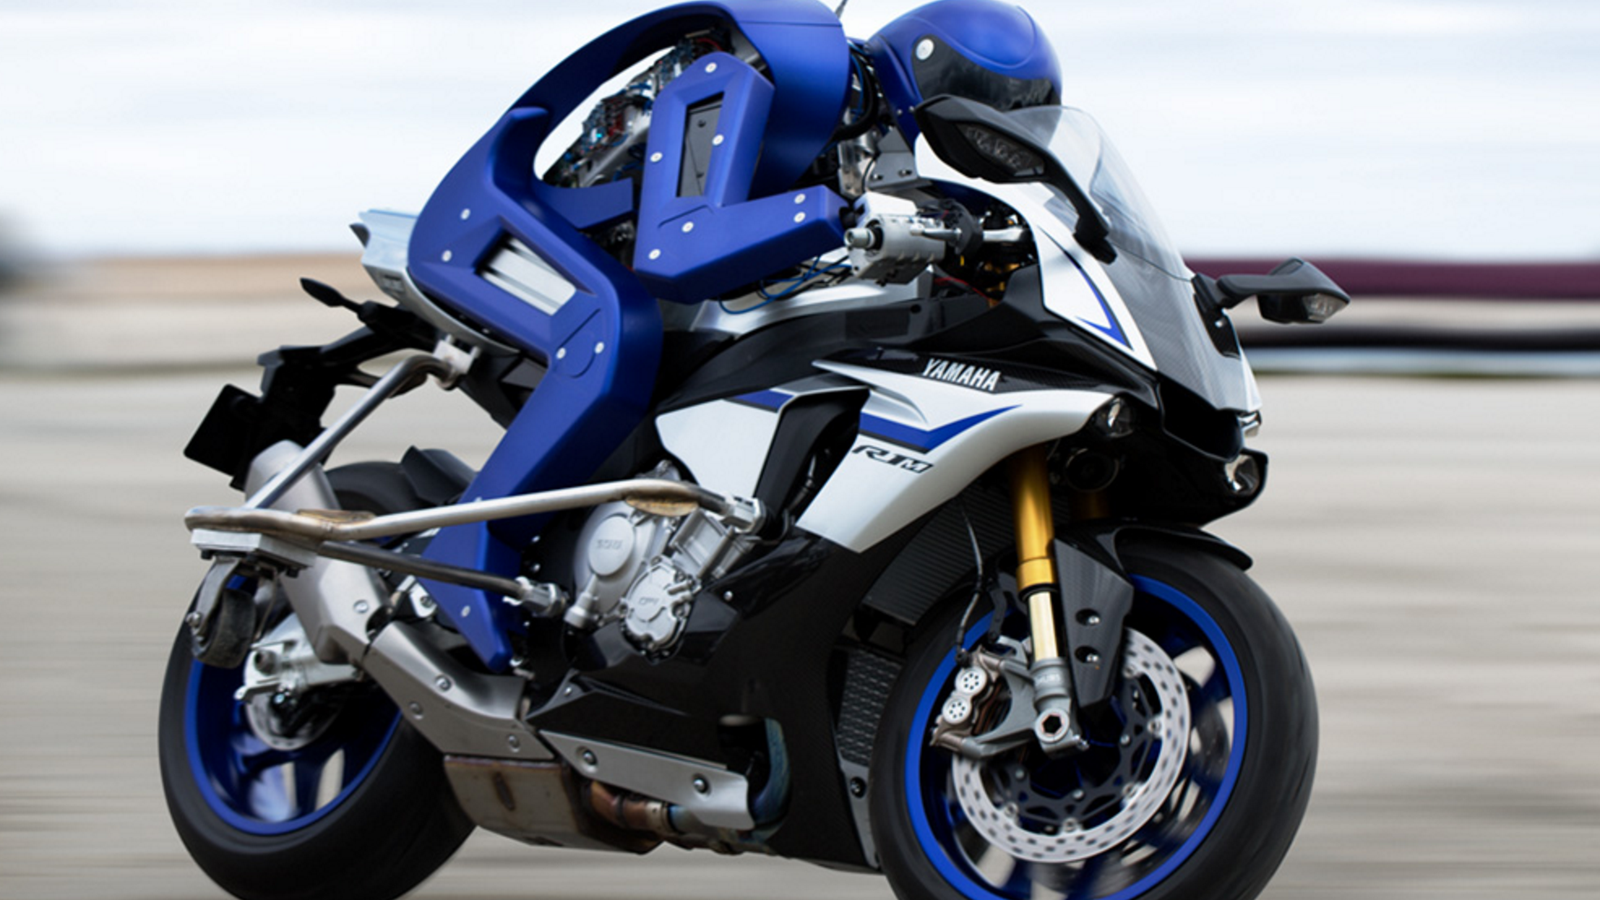 Yamaha built a motorcycle-driving robot challenging world champion Valentino Rossi